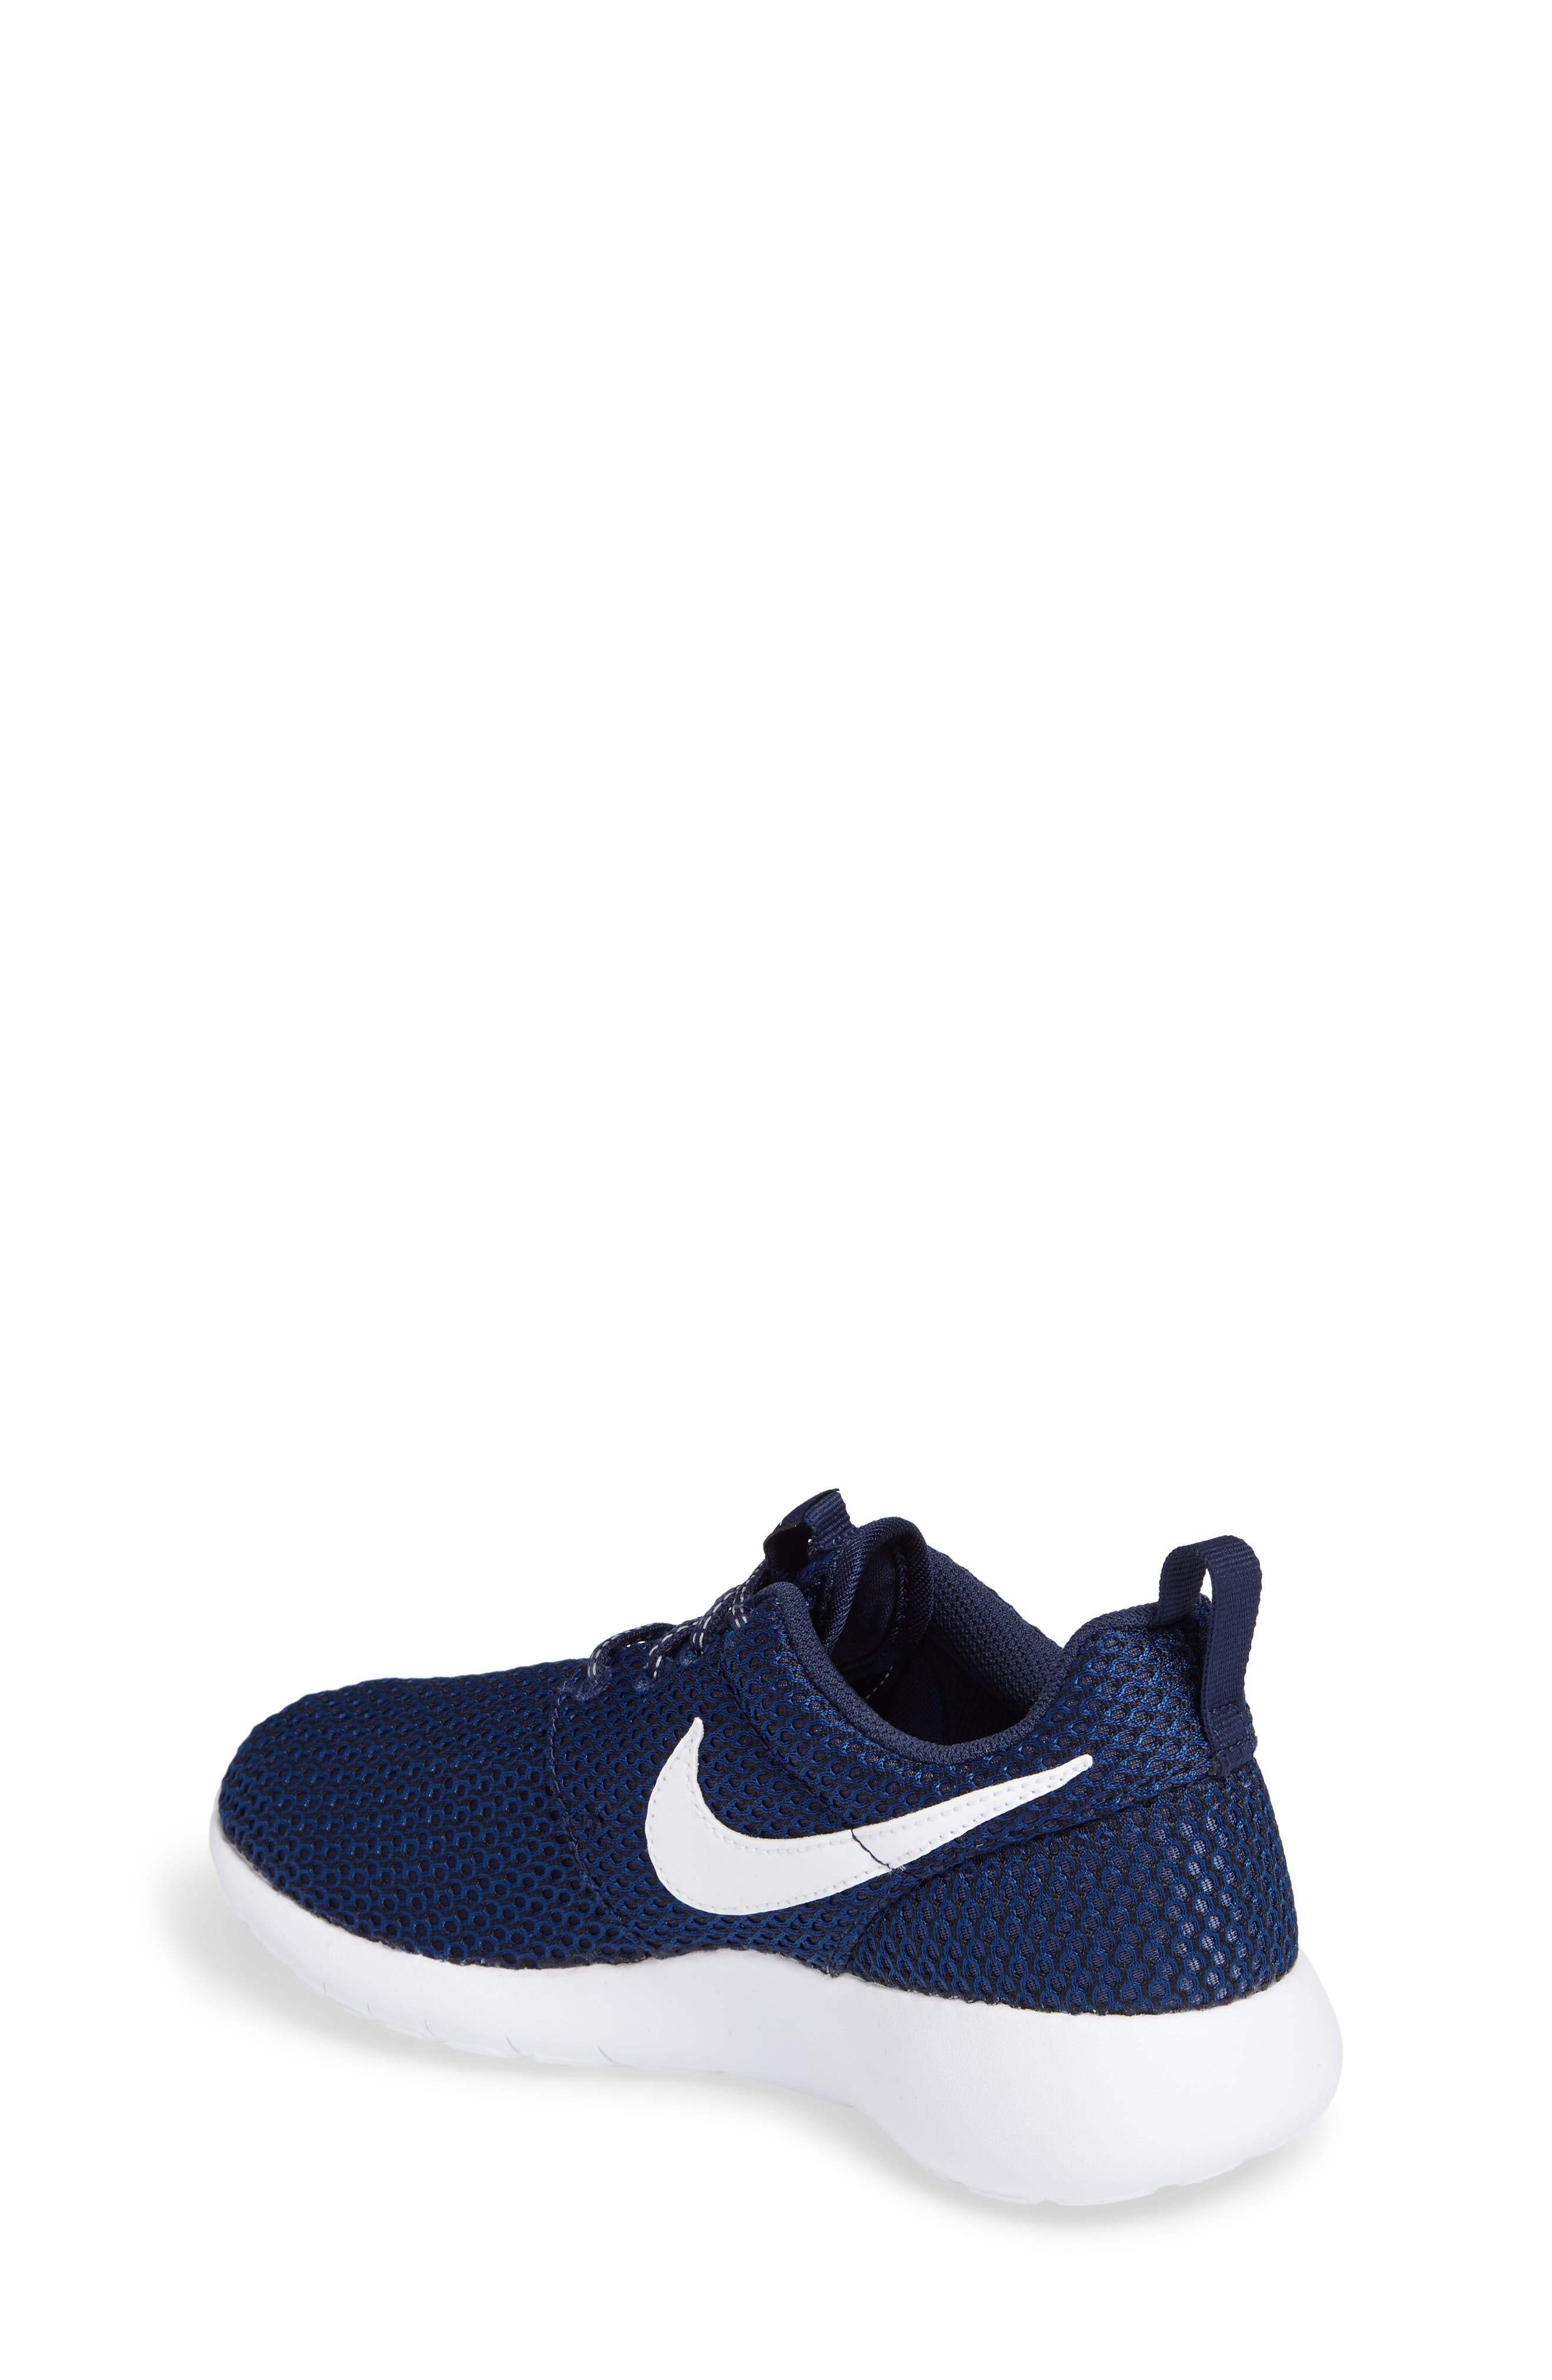 'Roshe Run' Sneaker,                             Alternate thumbnail 95, color,